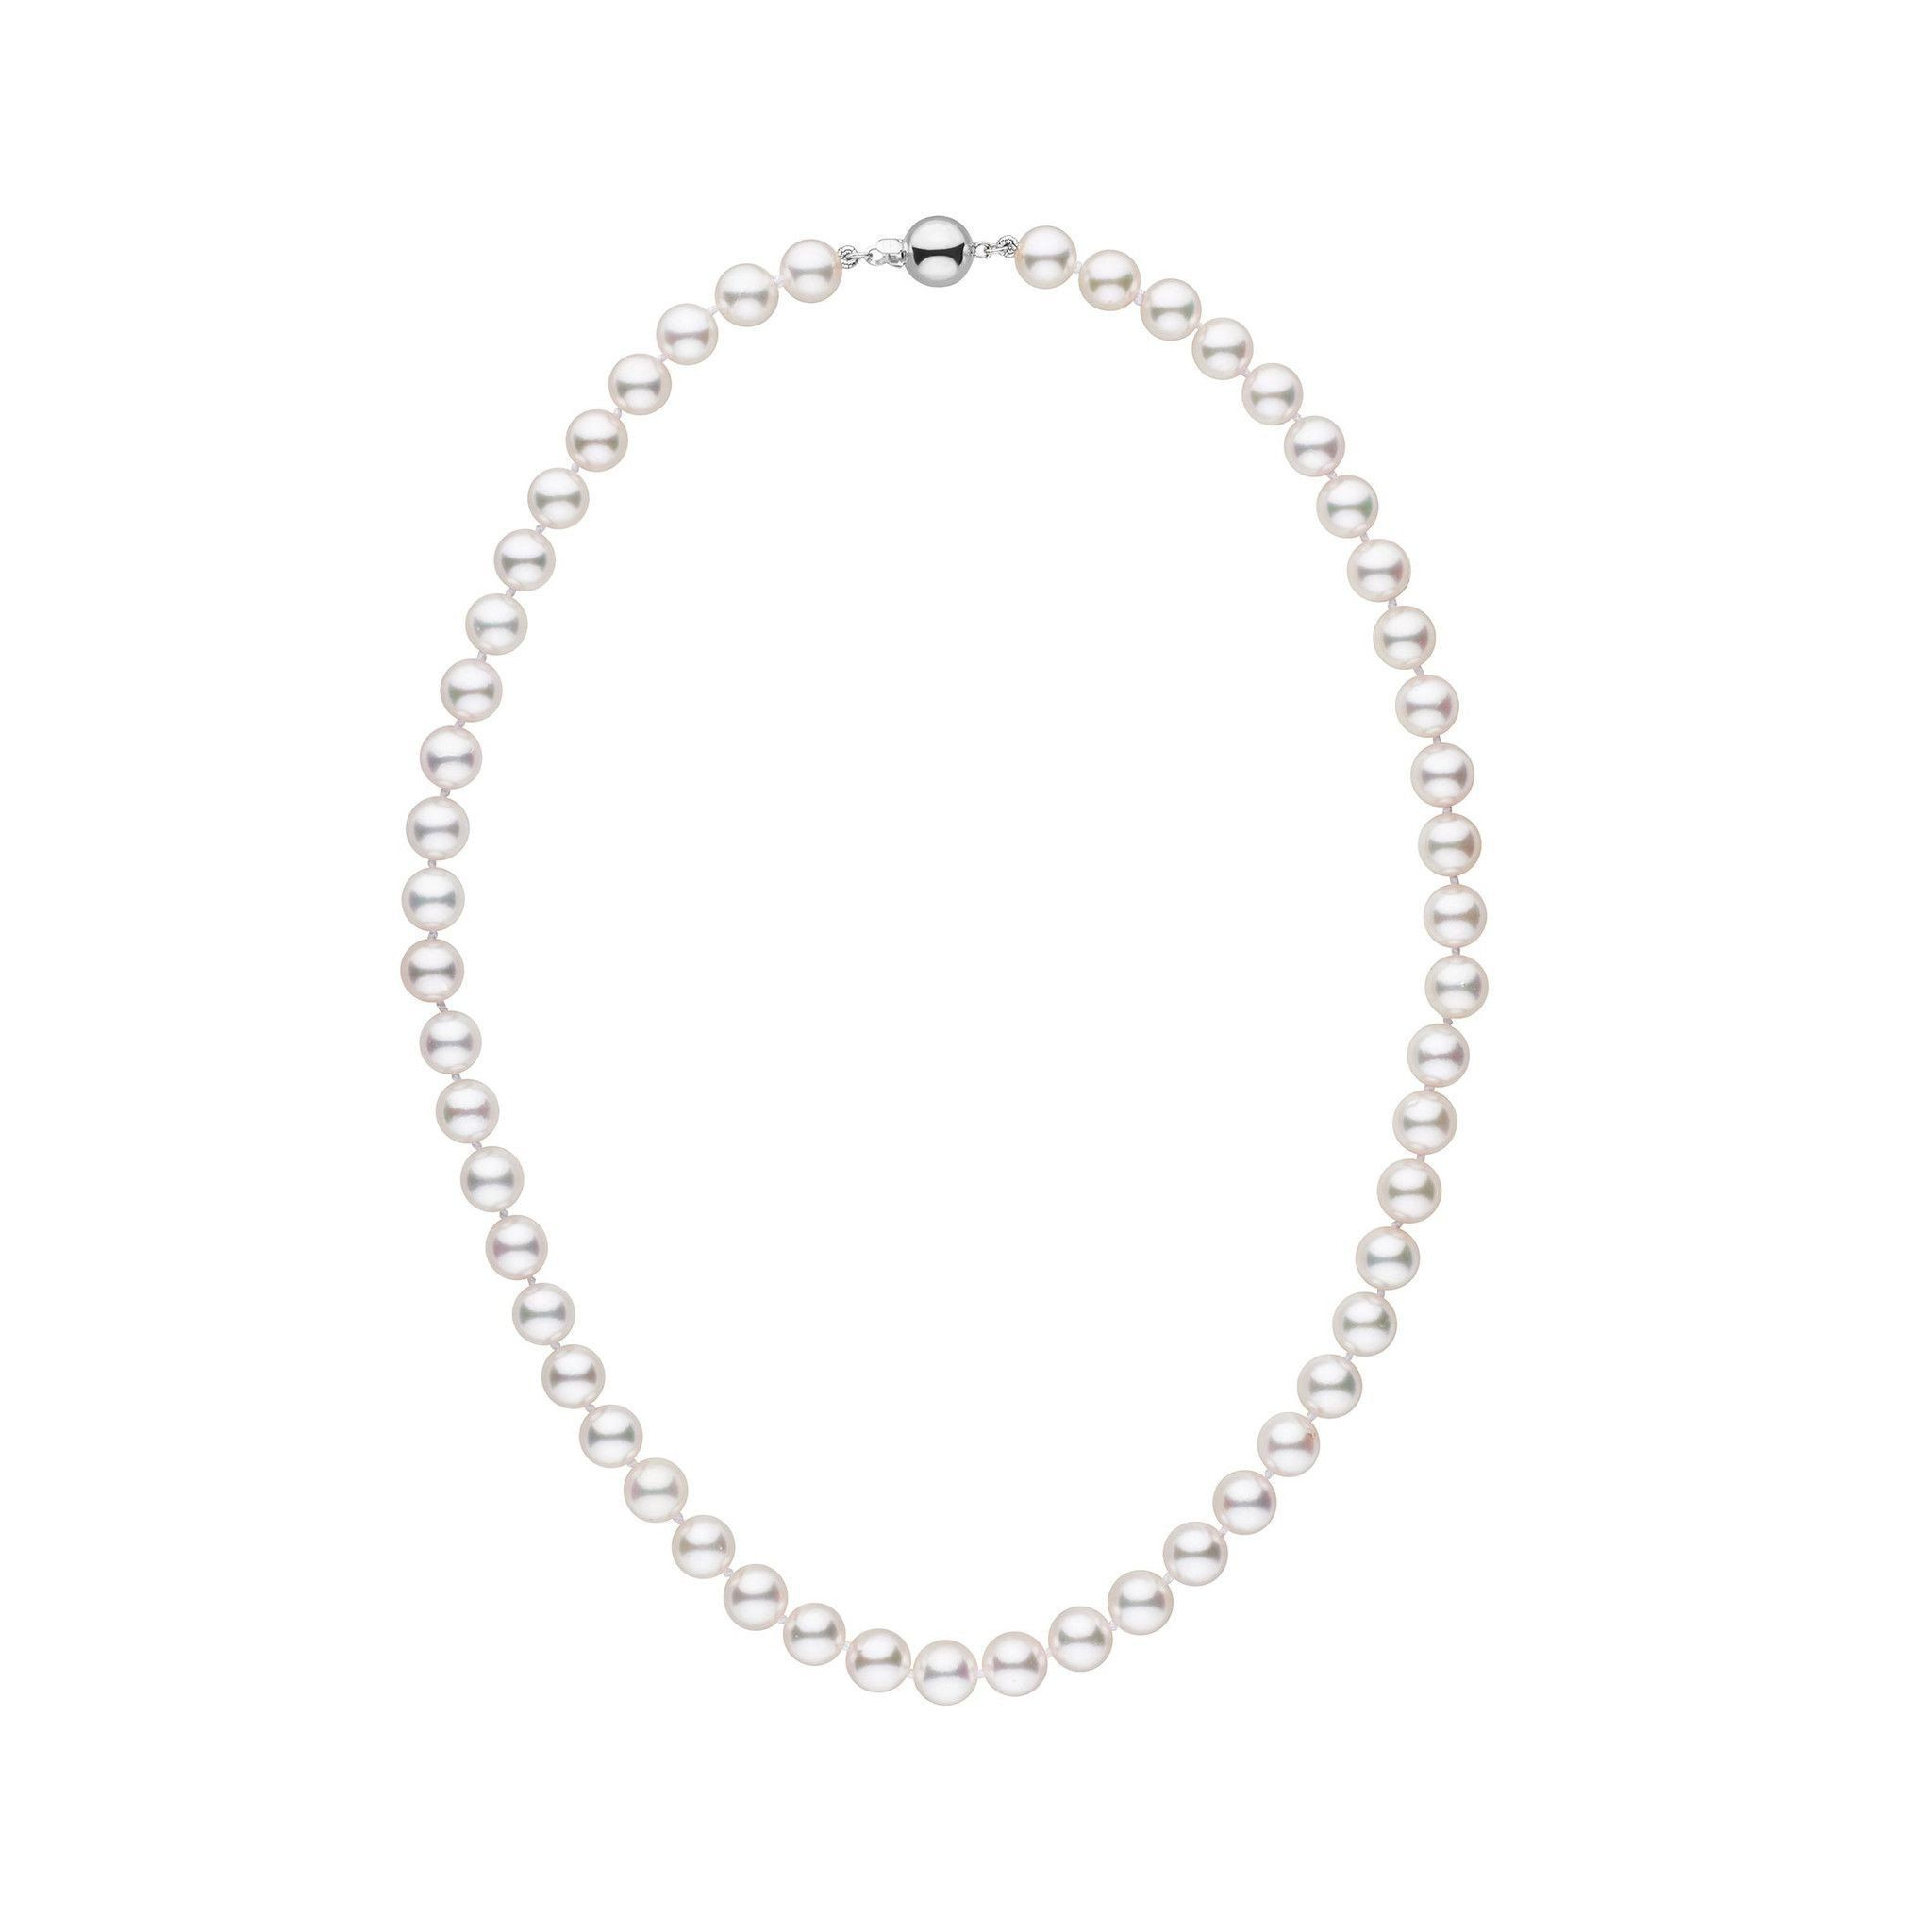 7.0-7.5 mm White Akoya 16 inch AAA Pearl Necklace